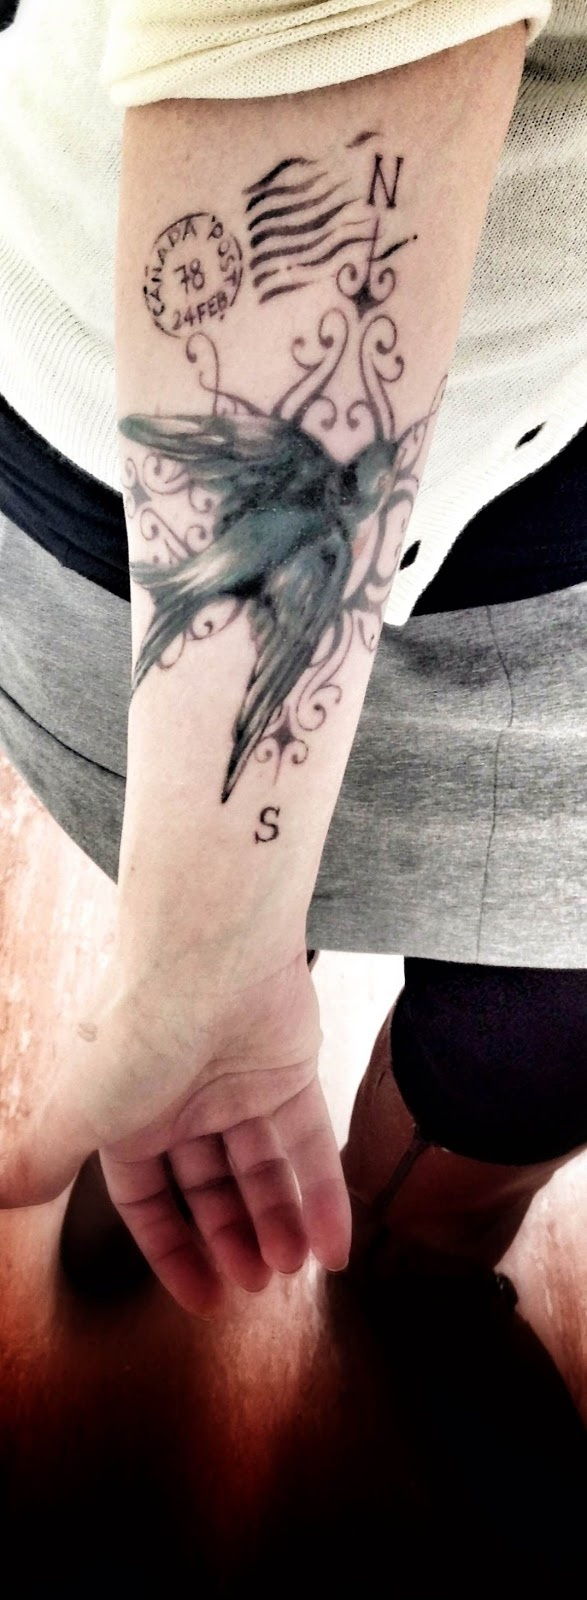 Victorian Sparrow Compass Traveler Tattoo! ideas in case she ever wanted to